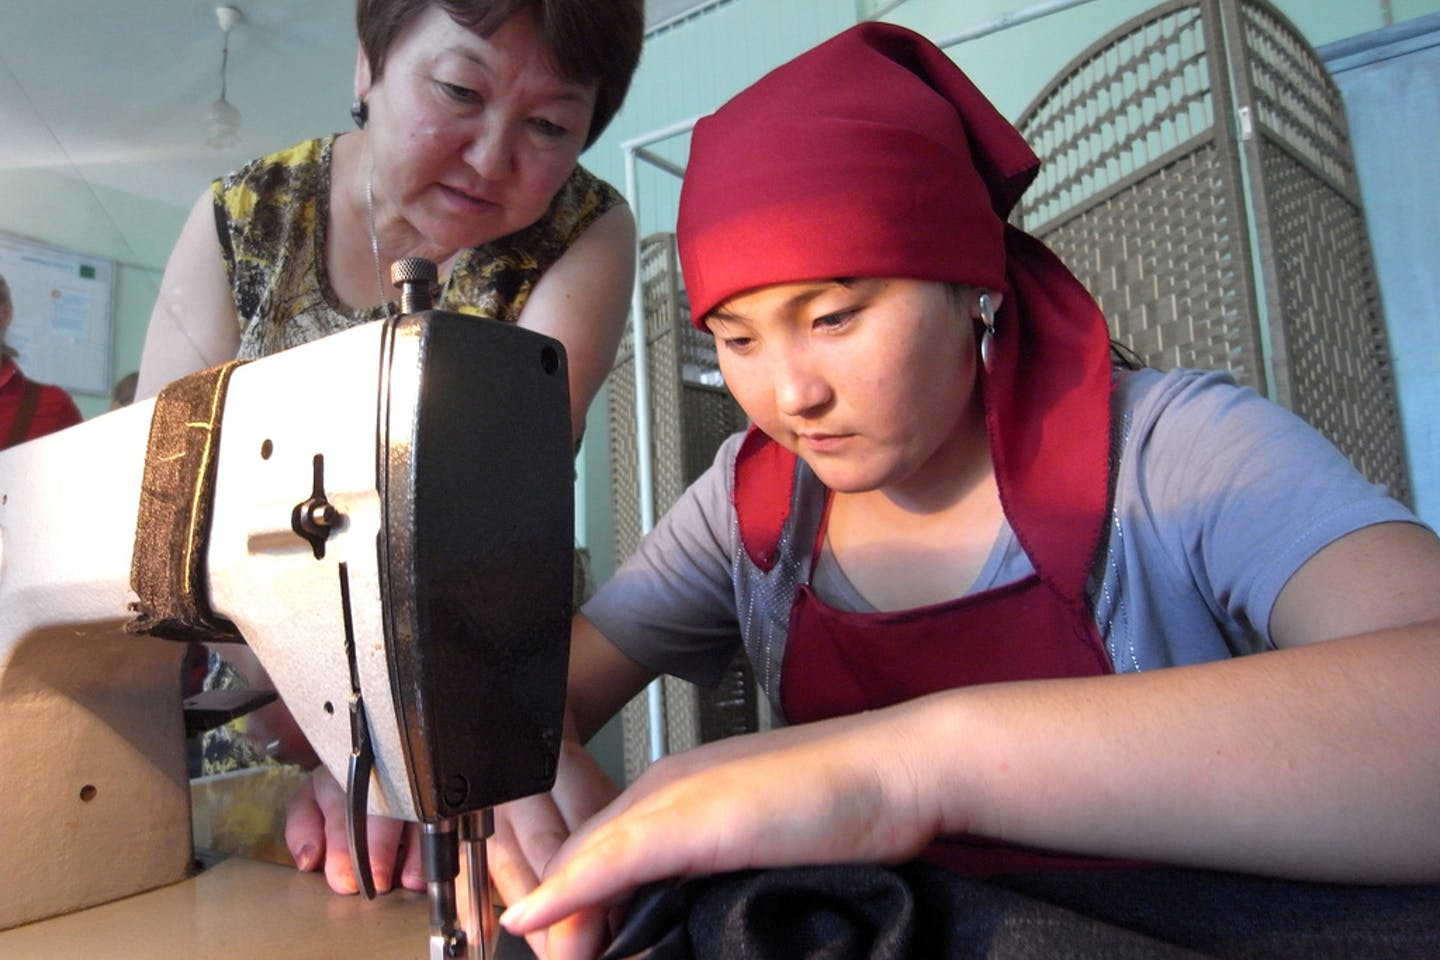 A student at a vocational school in Osh, Kyrgyzstan practices her sewing